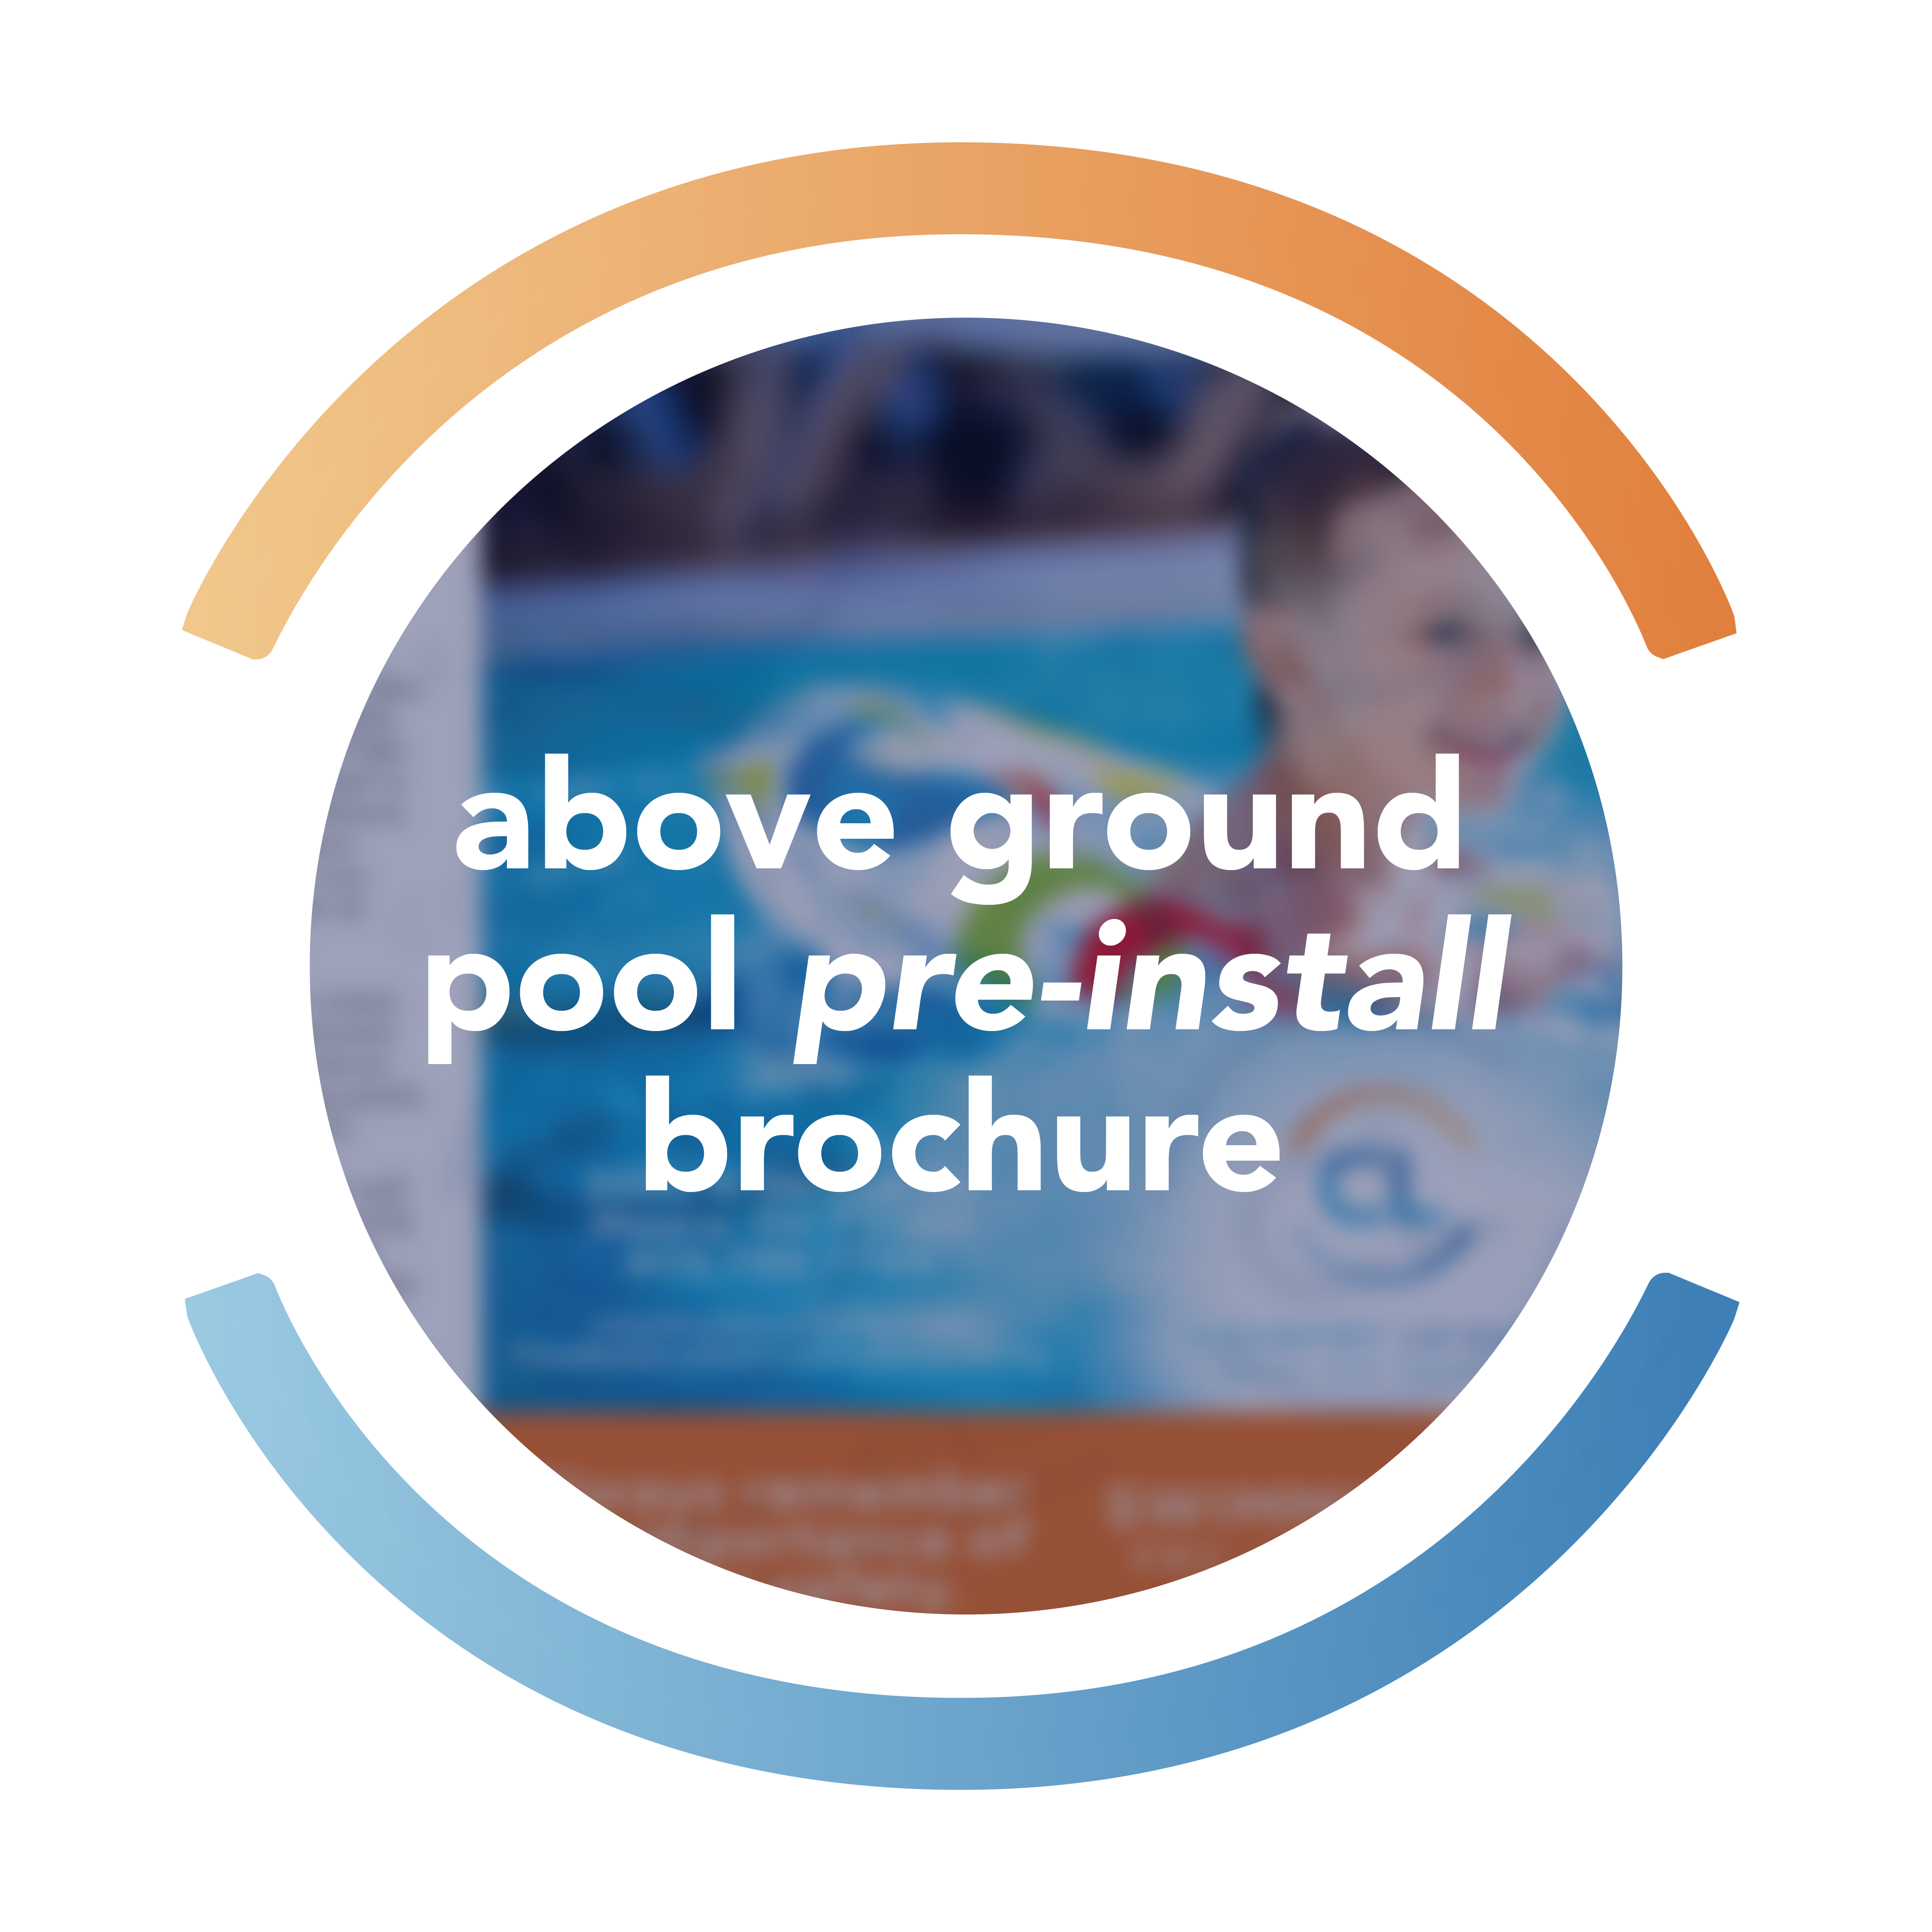 Above Ground Pool Pre-Install Brochure